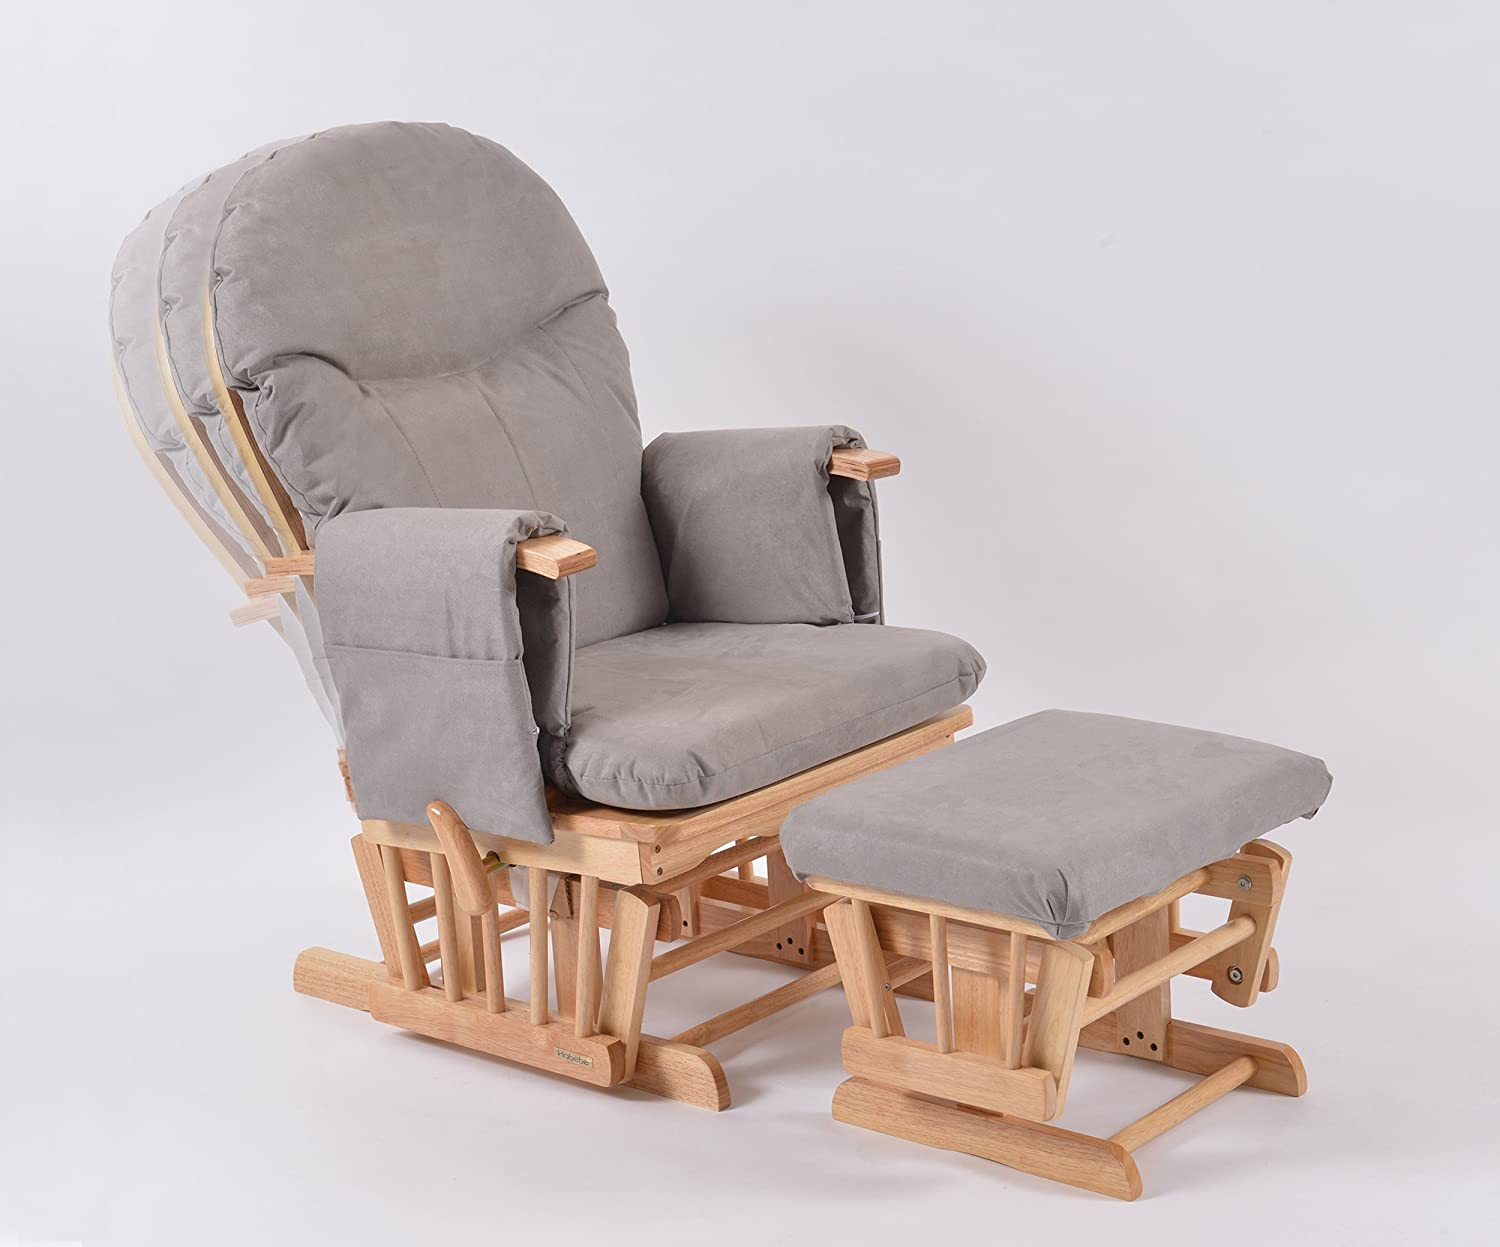 Habebe Glider Rocking Nursing Maternity Breastfeeding Recliner Chair With  Footstool ***WITH WASHABLE COVERS***: Amazon.co.uk: Kitchen U0026 Home